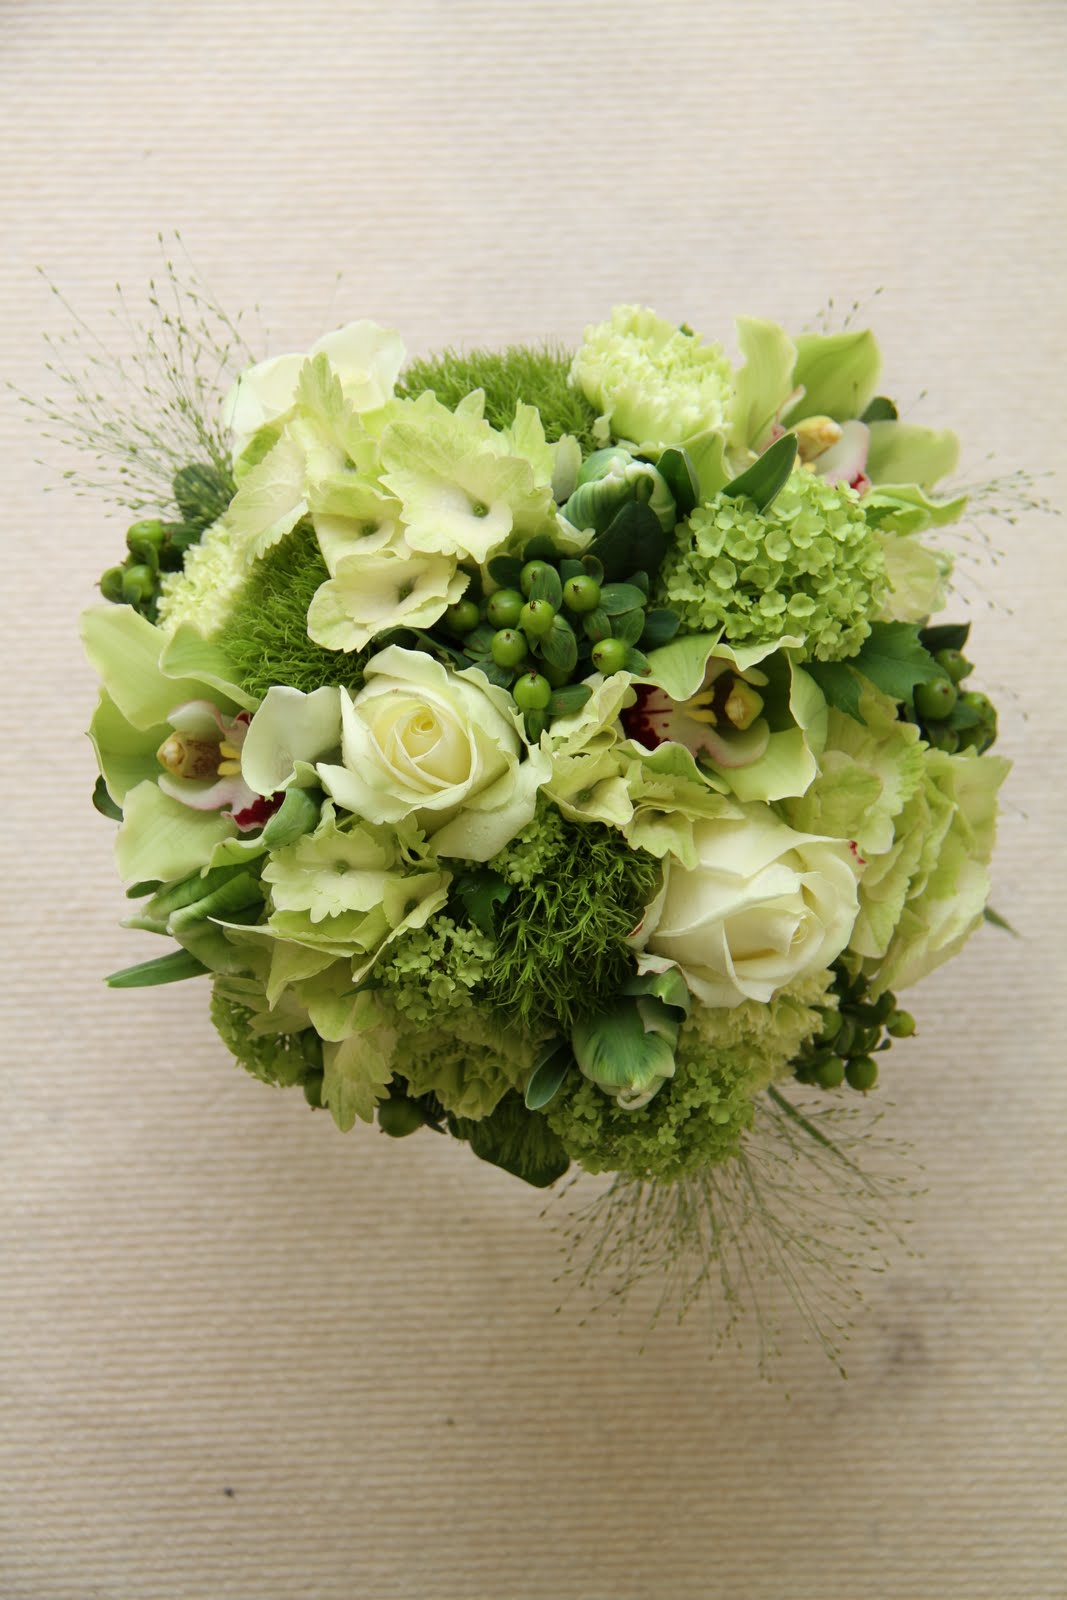 green ivory wedding flowers a wrist corsage cake topper corsages crystal table. Black Bedroom Furniture Sets. Home Design Ideas